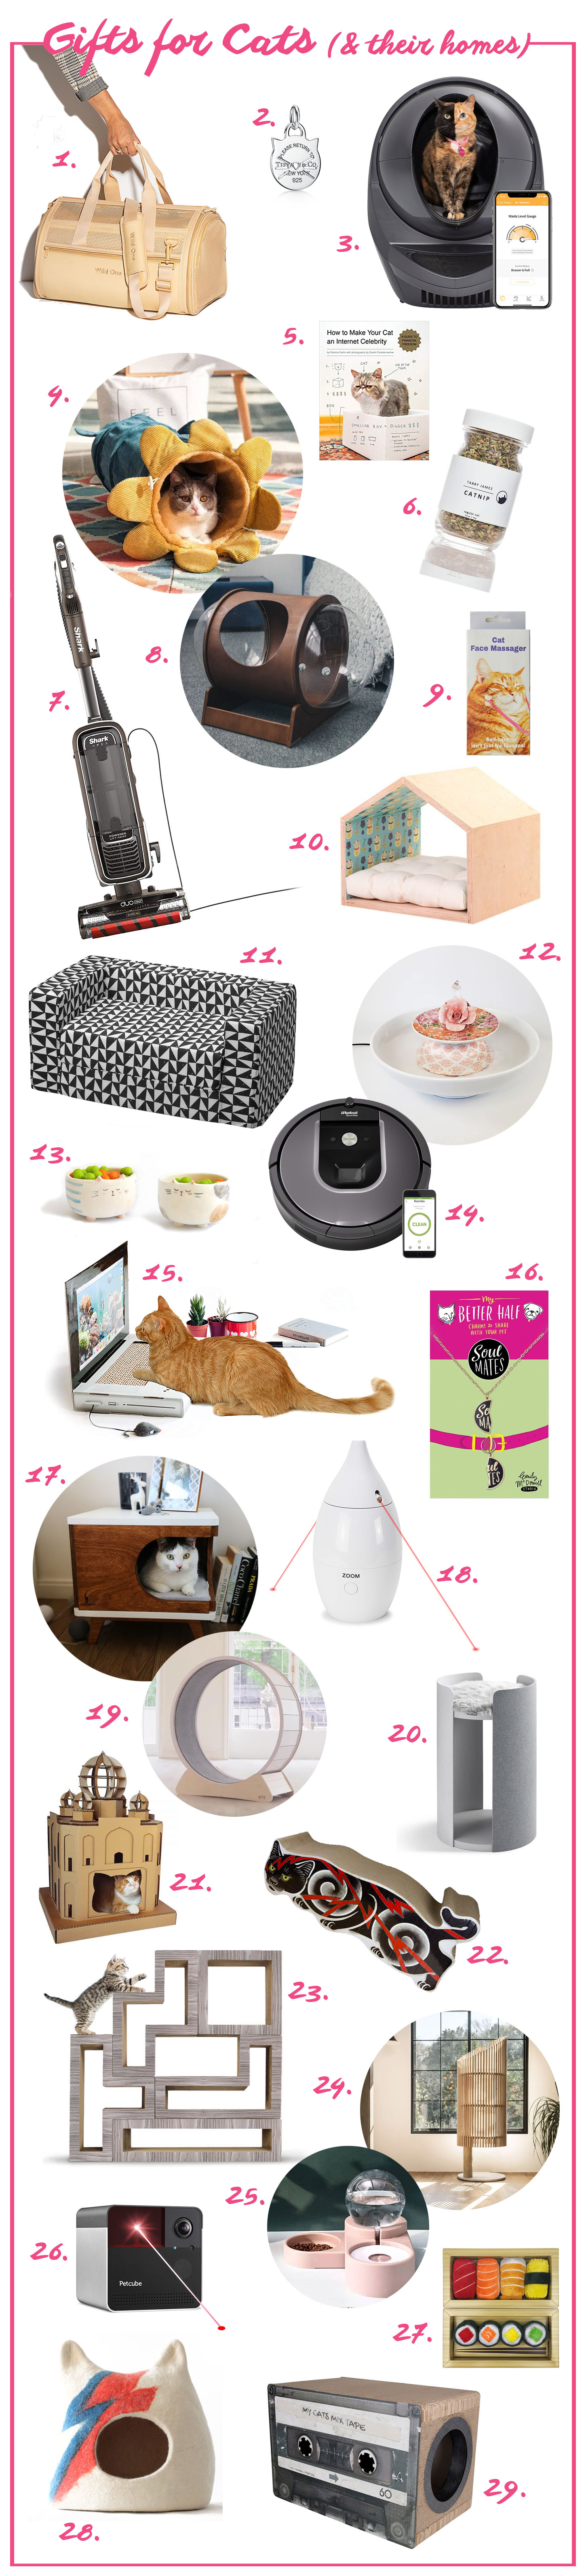 Ridiculous cat gifts for cat ladies and the cats they love. Presents for cats including and cat owners including cat beds, cat trees, water dishes, toys, vacuums, litter robots, roomba, and more.